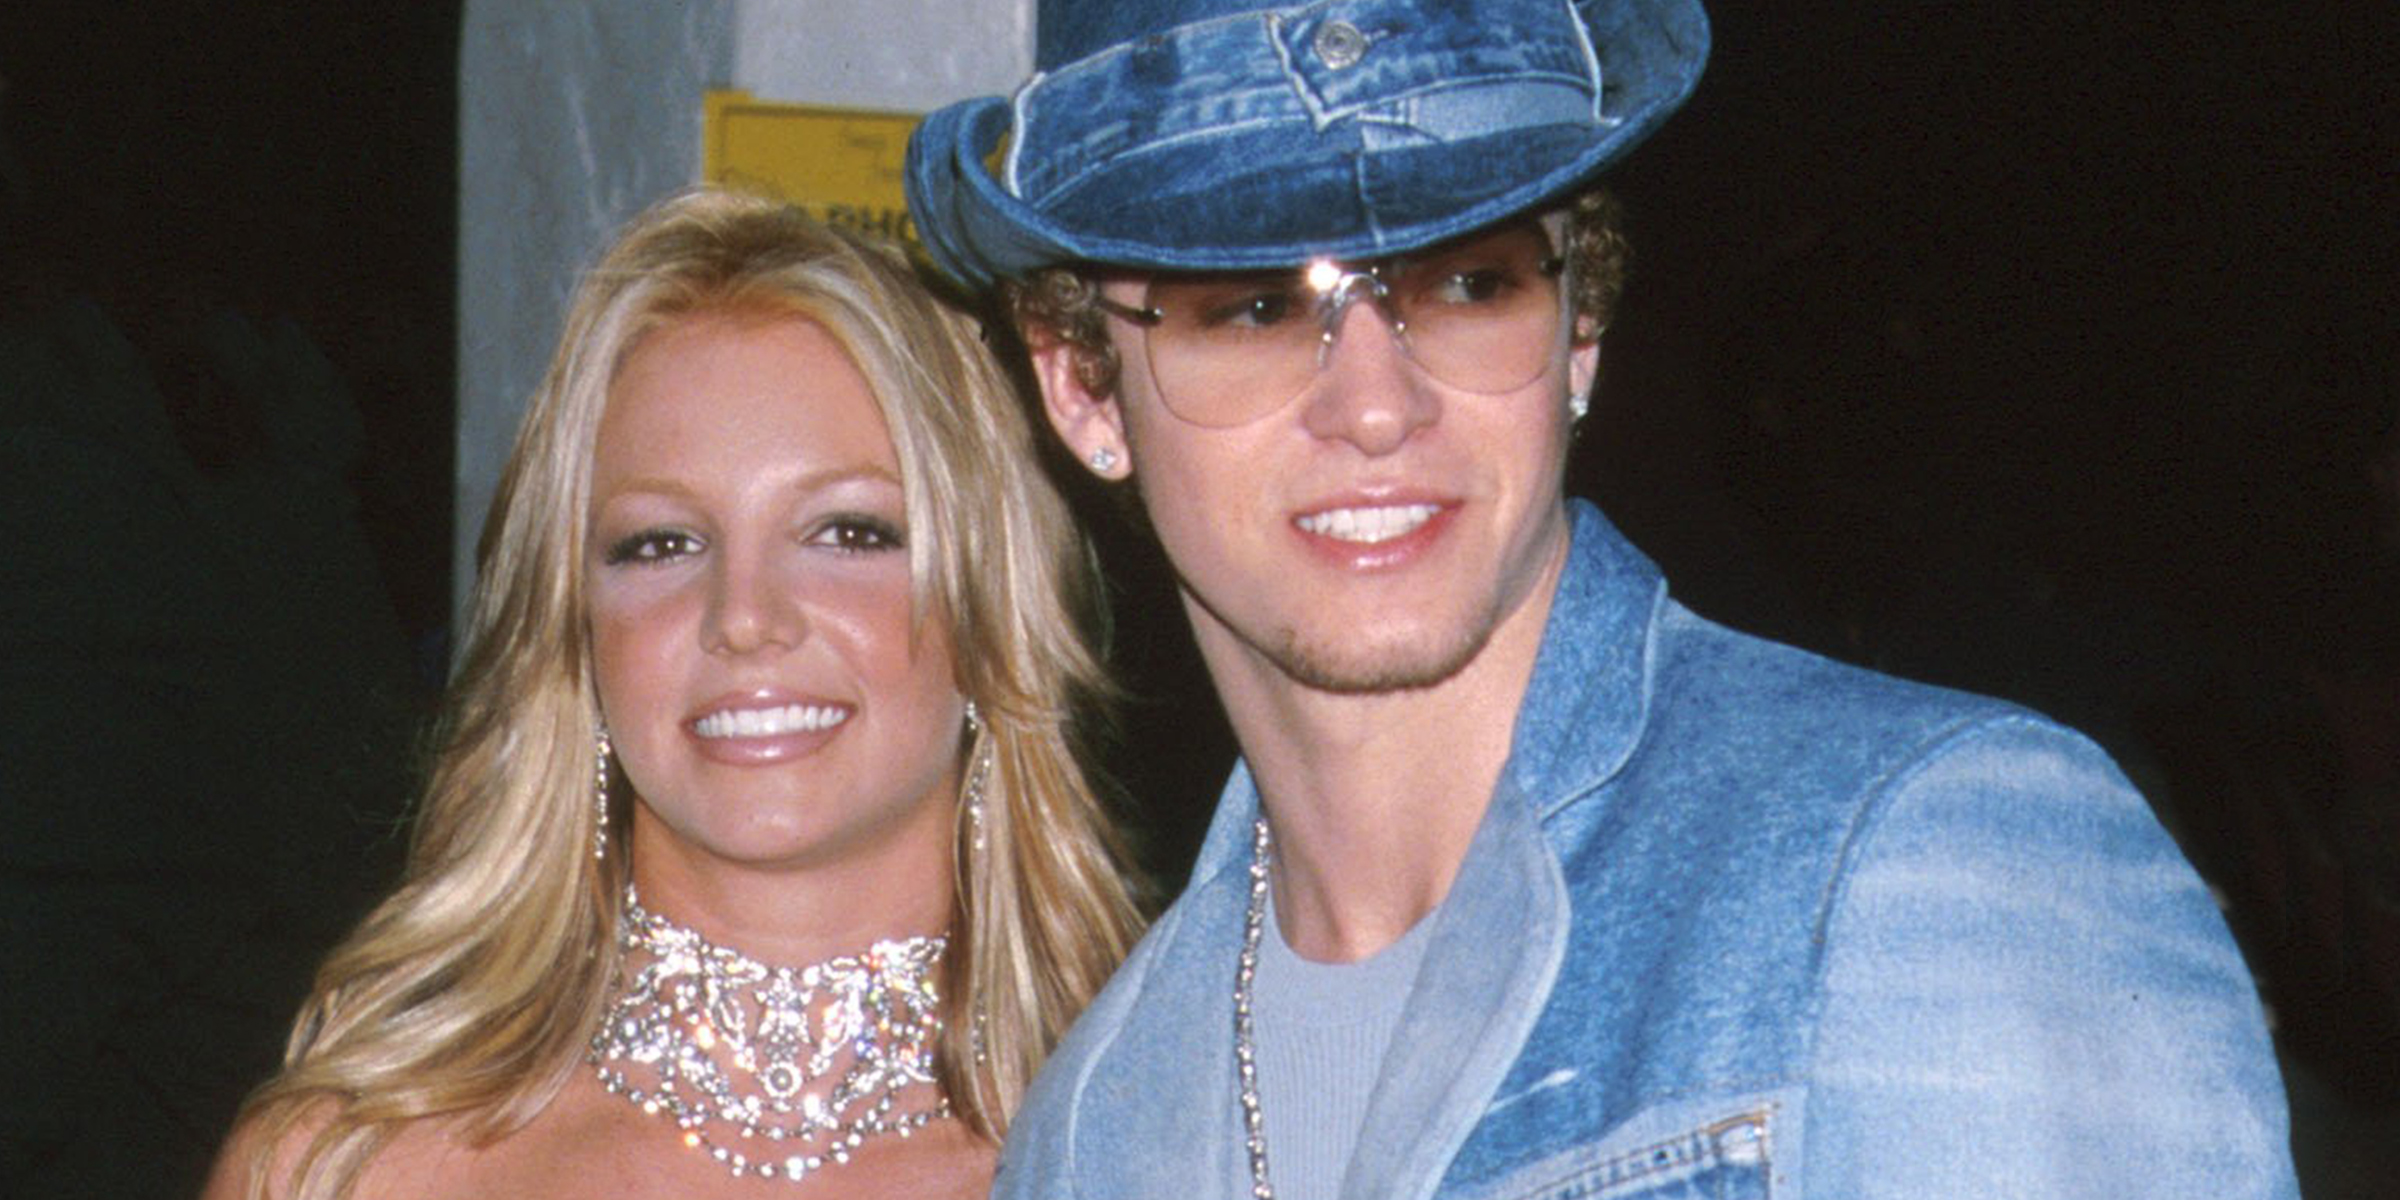 Justin Timberlake Looks Back On His Matching Denim Moment With Britney Spears